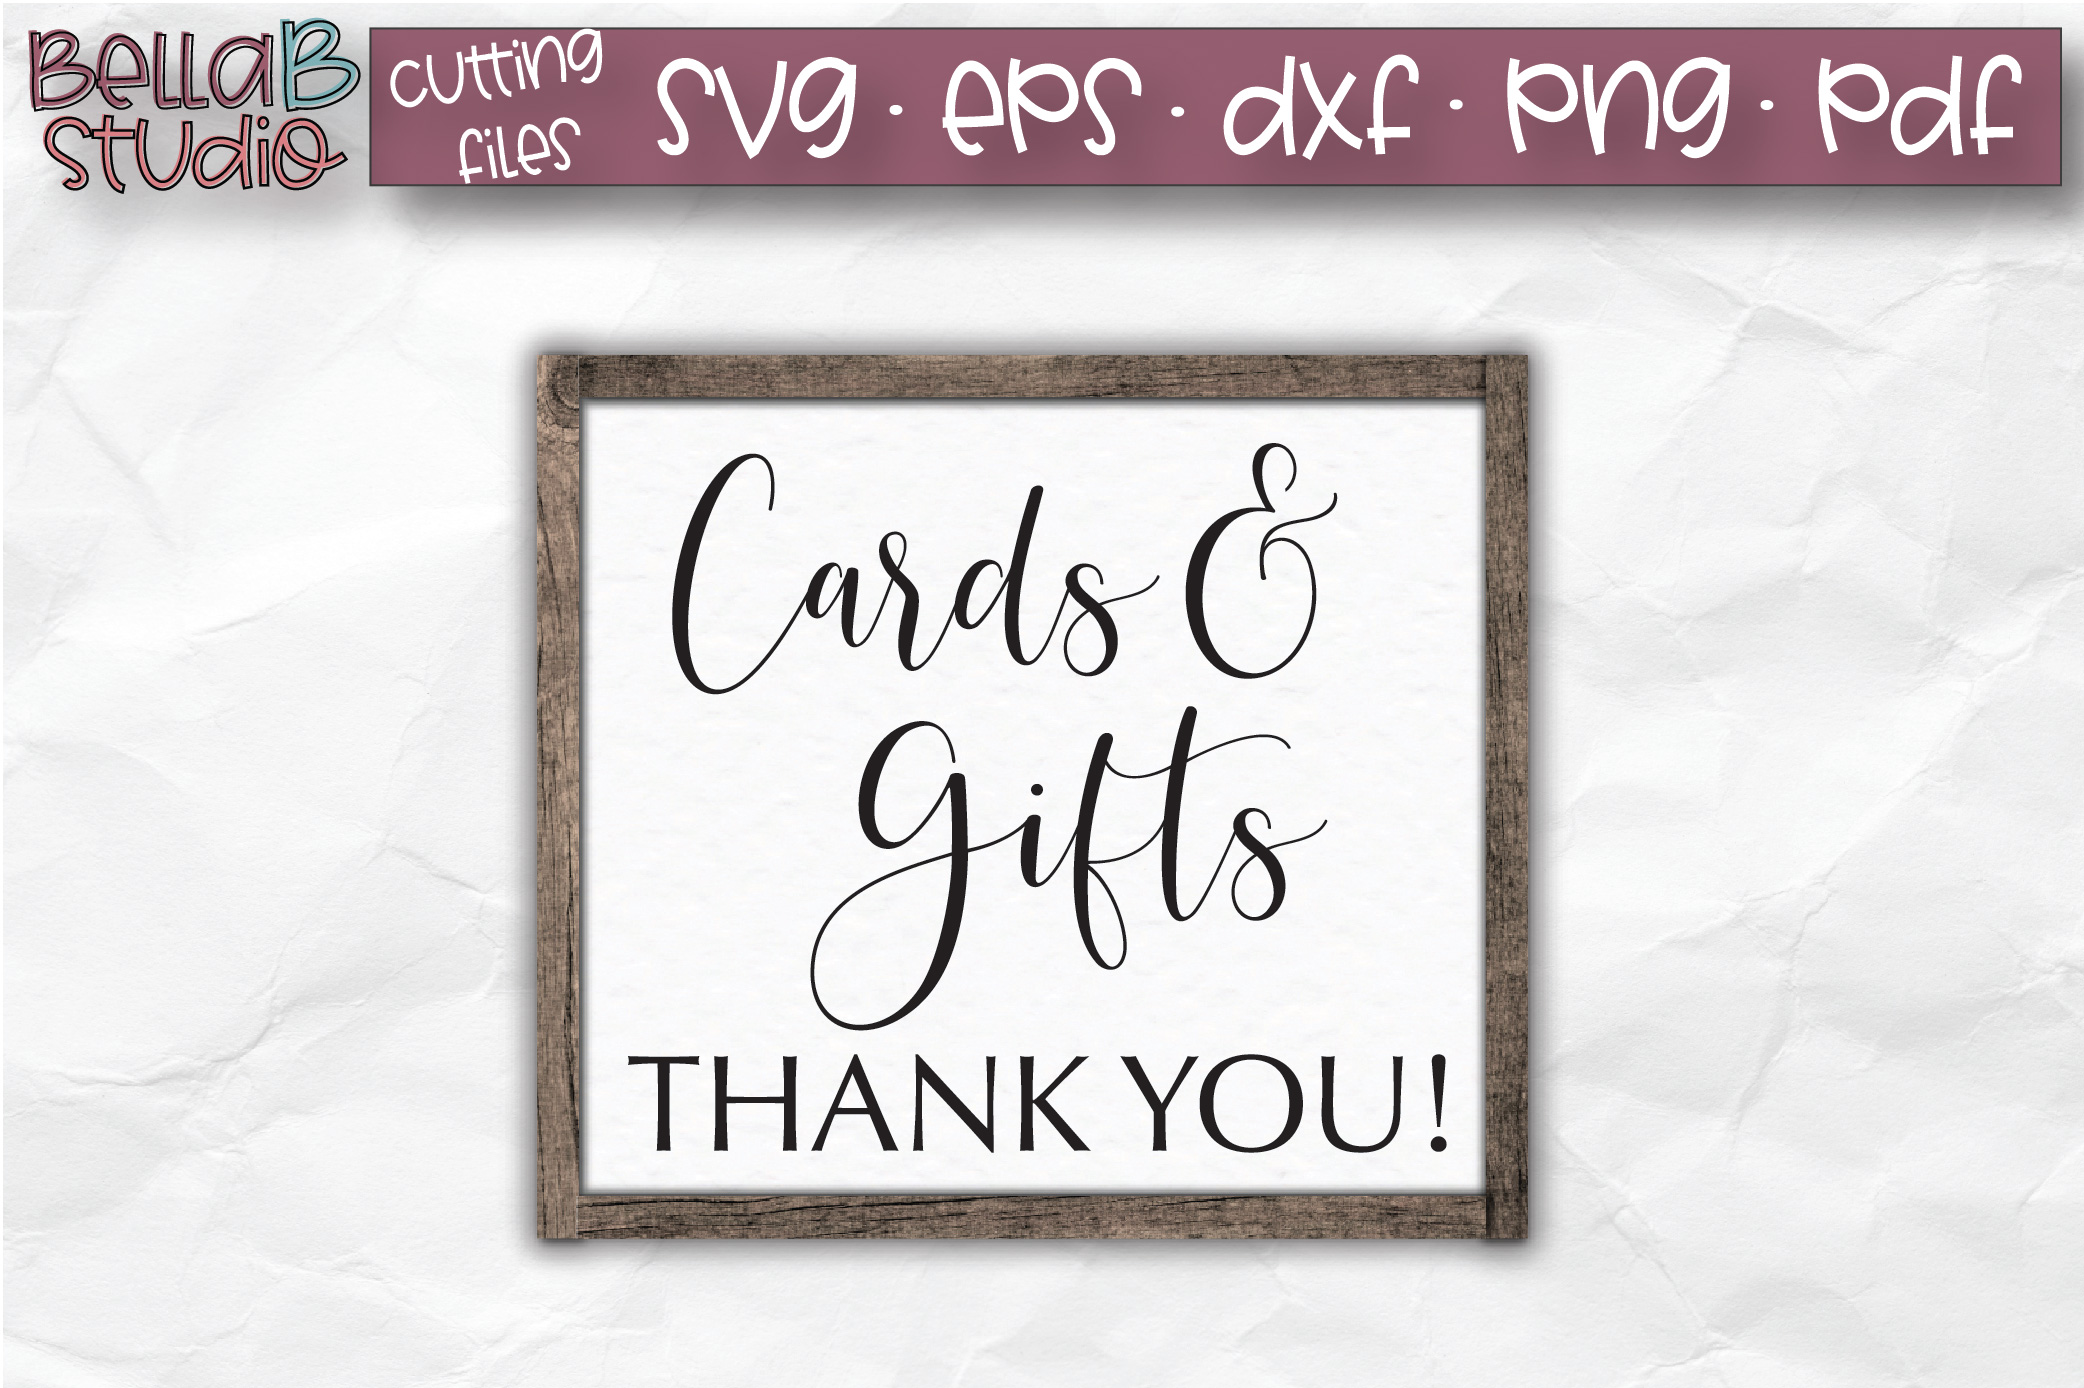 Wedding Sign SVG, Cards and Gifts SVG, Wedding SVG example image 1